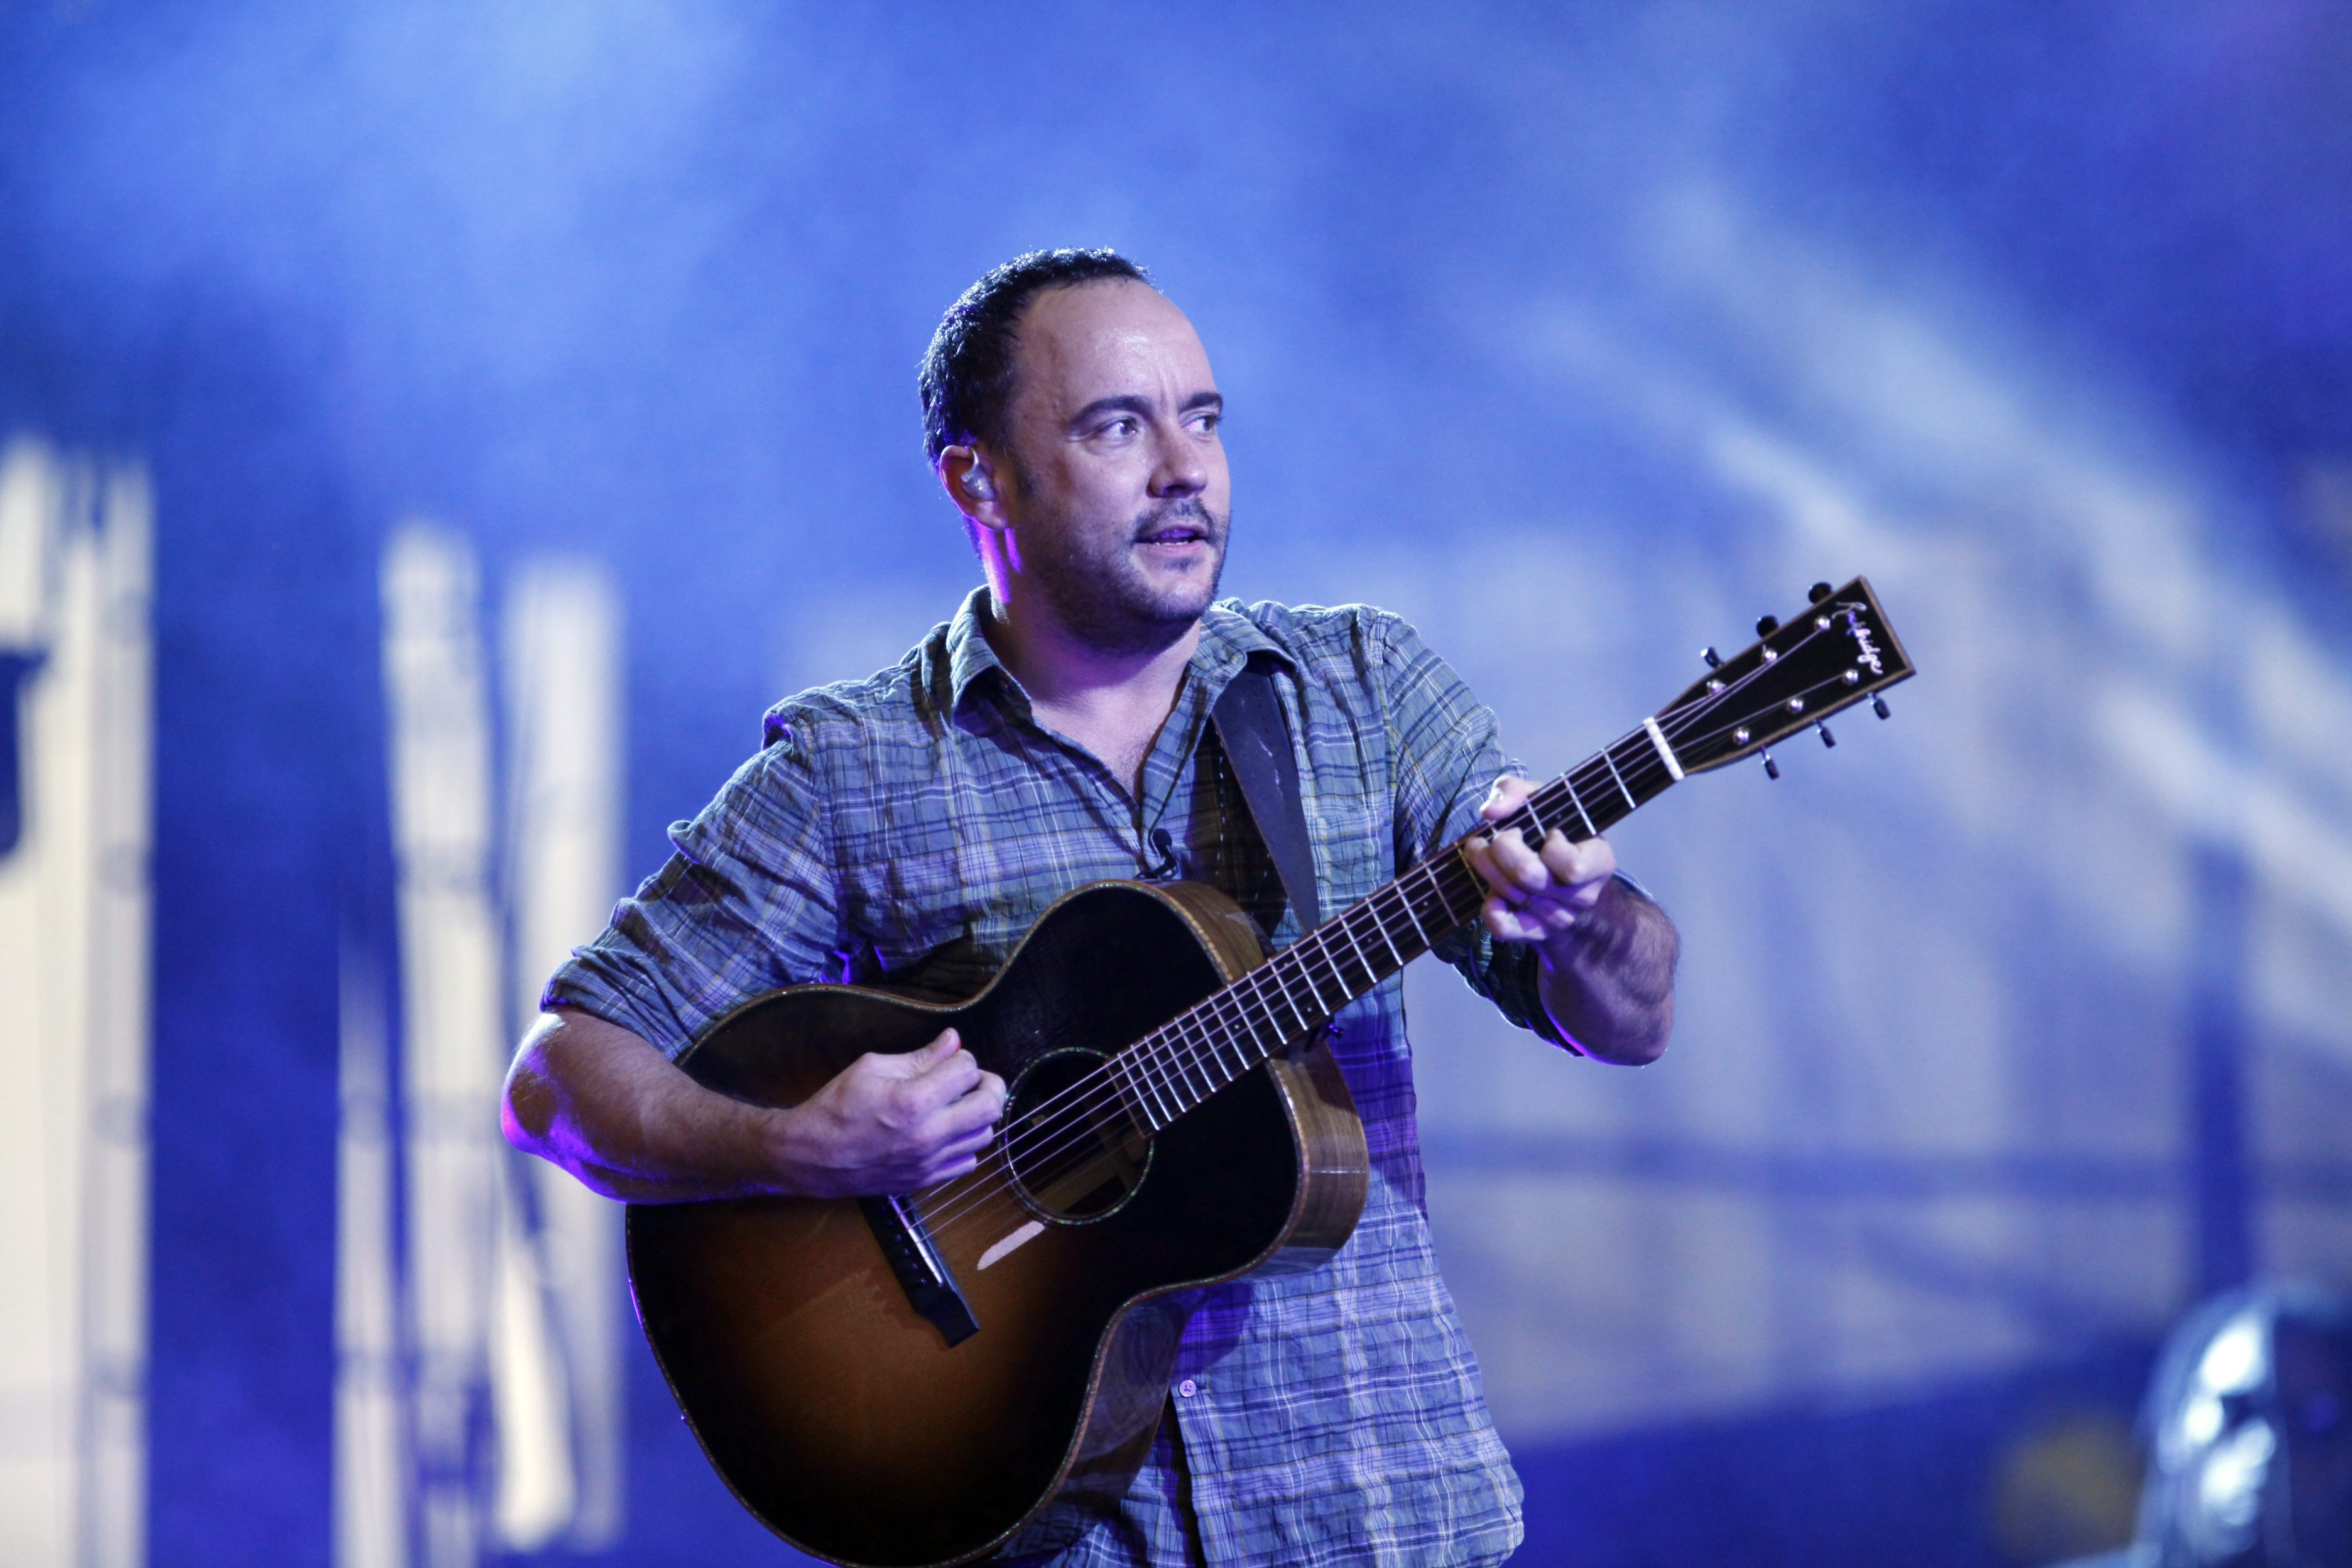 Dave Matthews plays guitar and sings during his band's show at Darien Lake Performing Arts Center. The band dipped into its deep archive, offering pop tunes, folk balladry and radio-friendly anthems.